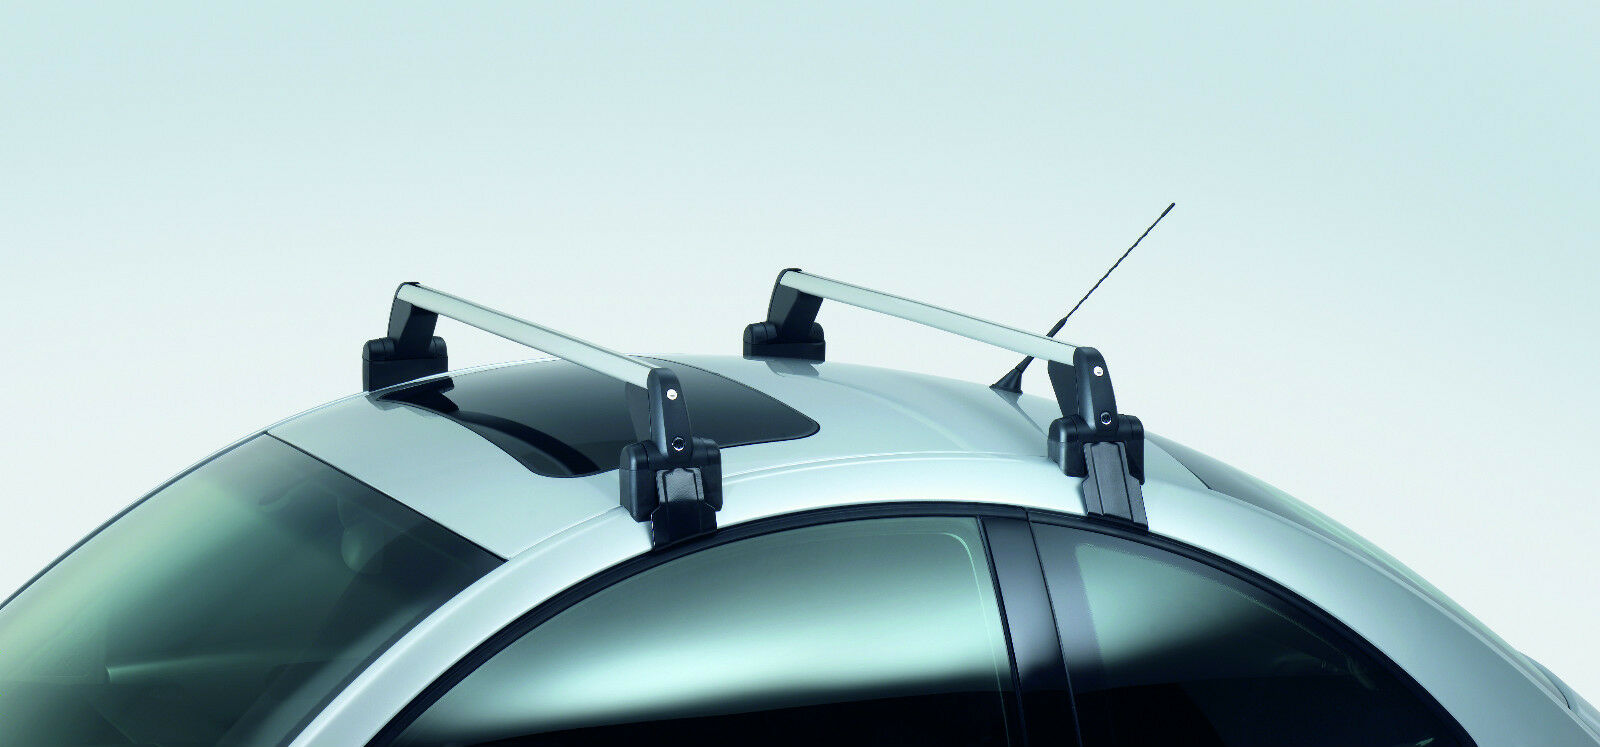 Vw New Beetle Volkswagen Base Rack Carrier Roof Bars